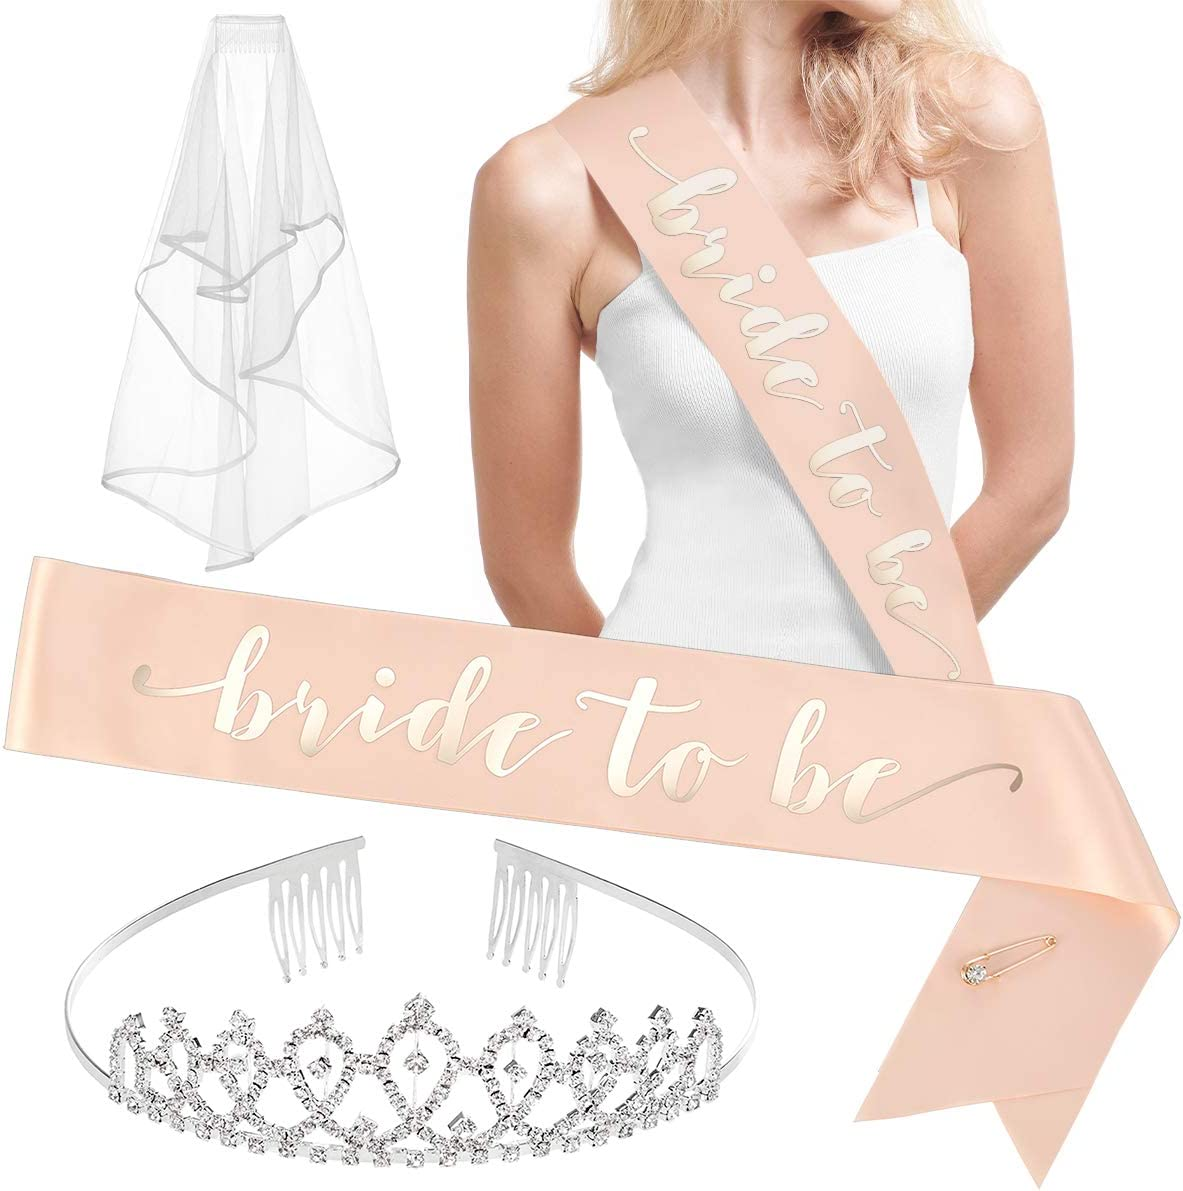 xo, Fetti Rose Gold Pink Bachelorette Party Decorations Kit - Bridal Shower Supplies | Bride to Be Sash, Rhinestone Tiara, Pre-Strung Banner, Veil + Bride Tribe Tattoos: Home & Kitchen